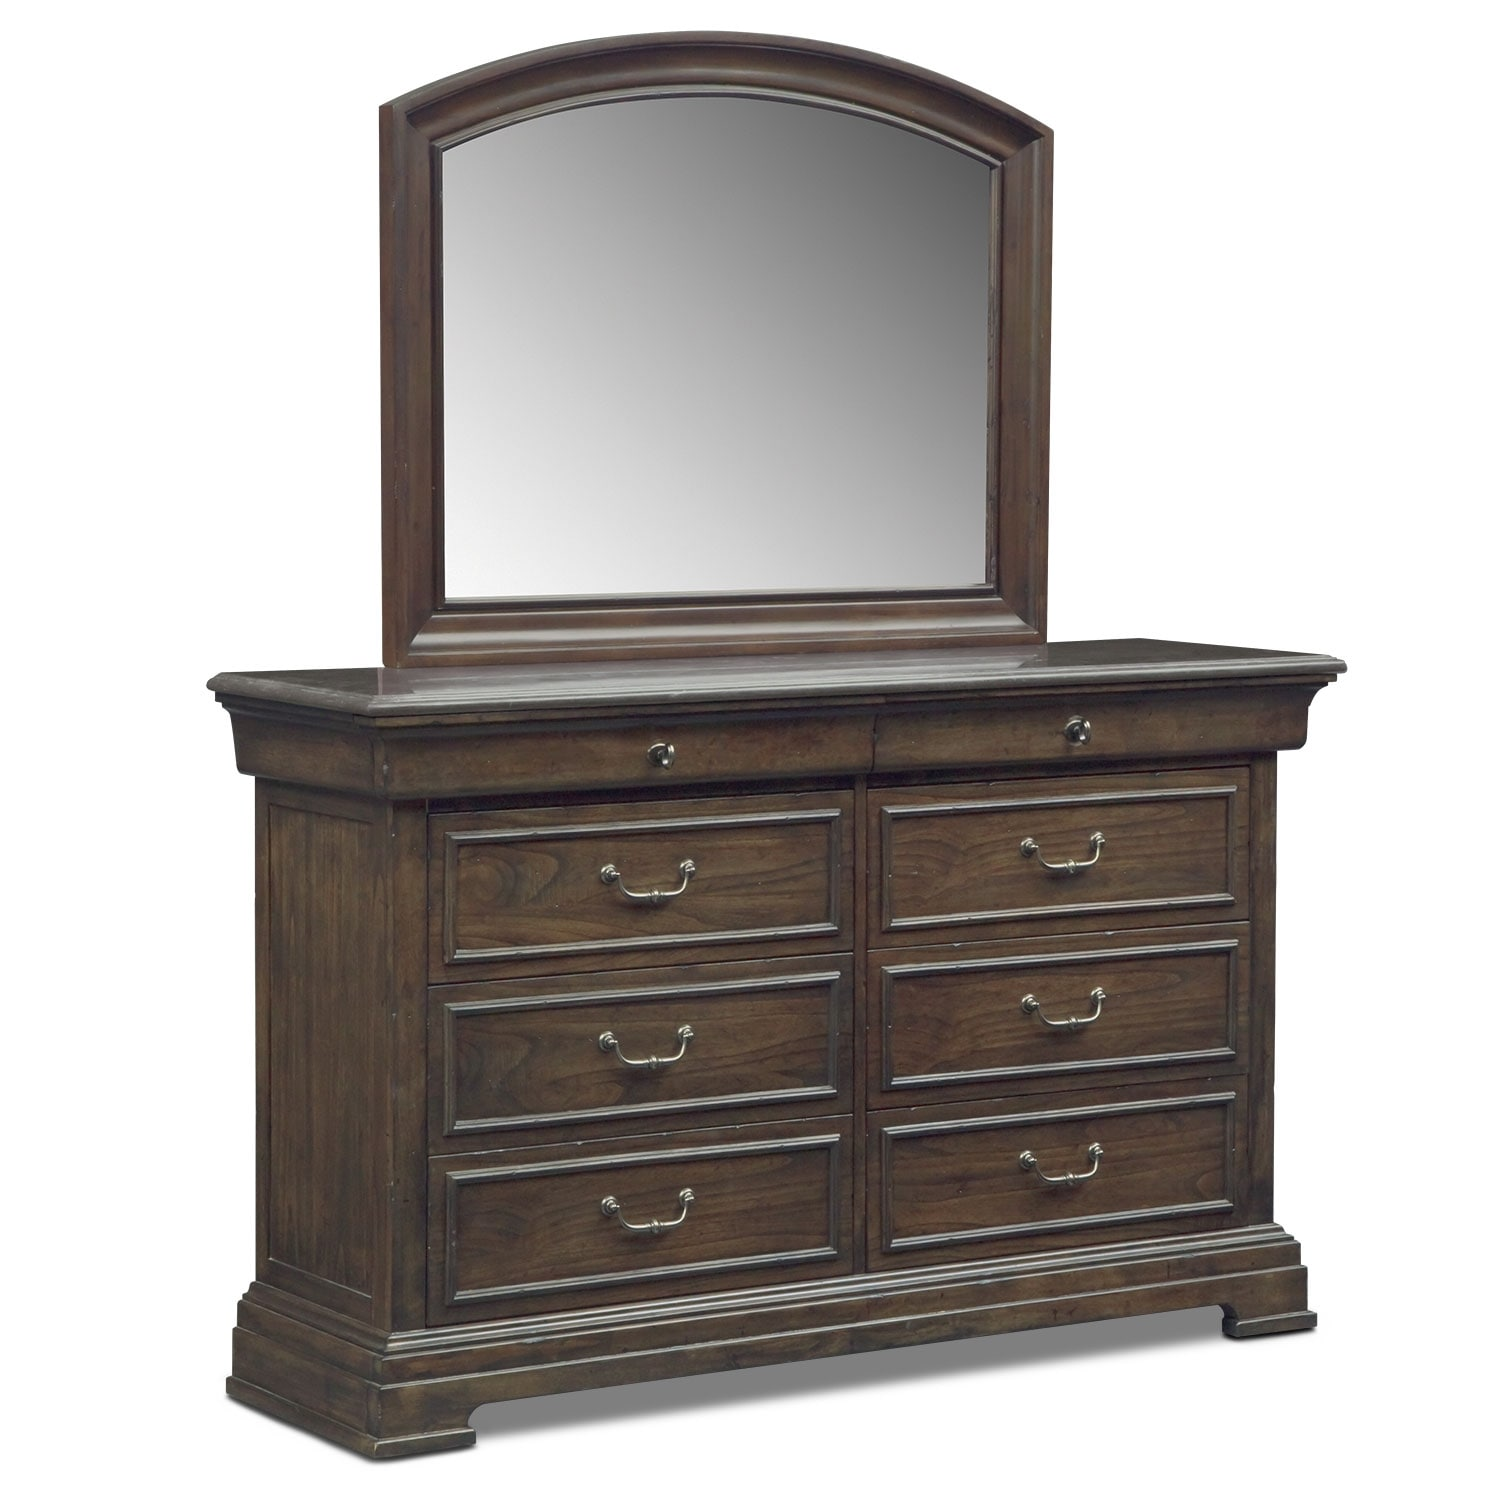 Bedroom Furniture - Collinwood Dresser and Mirror - Brown